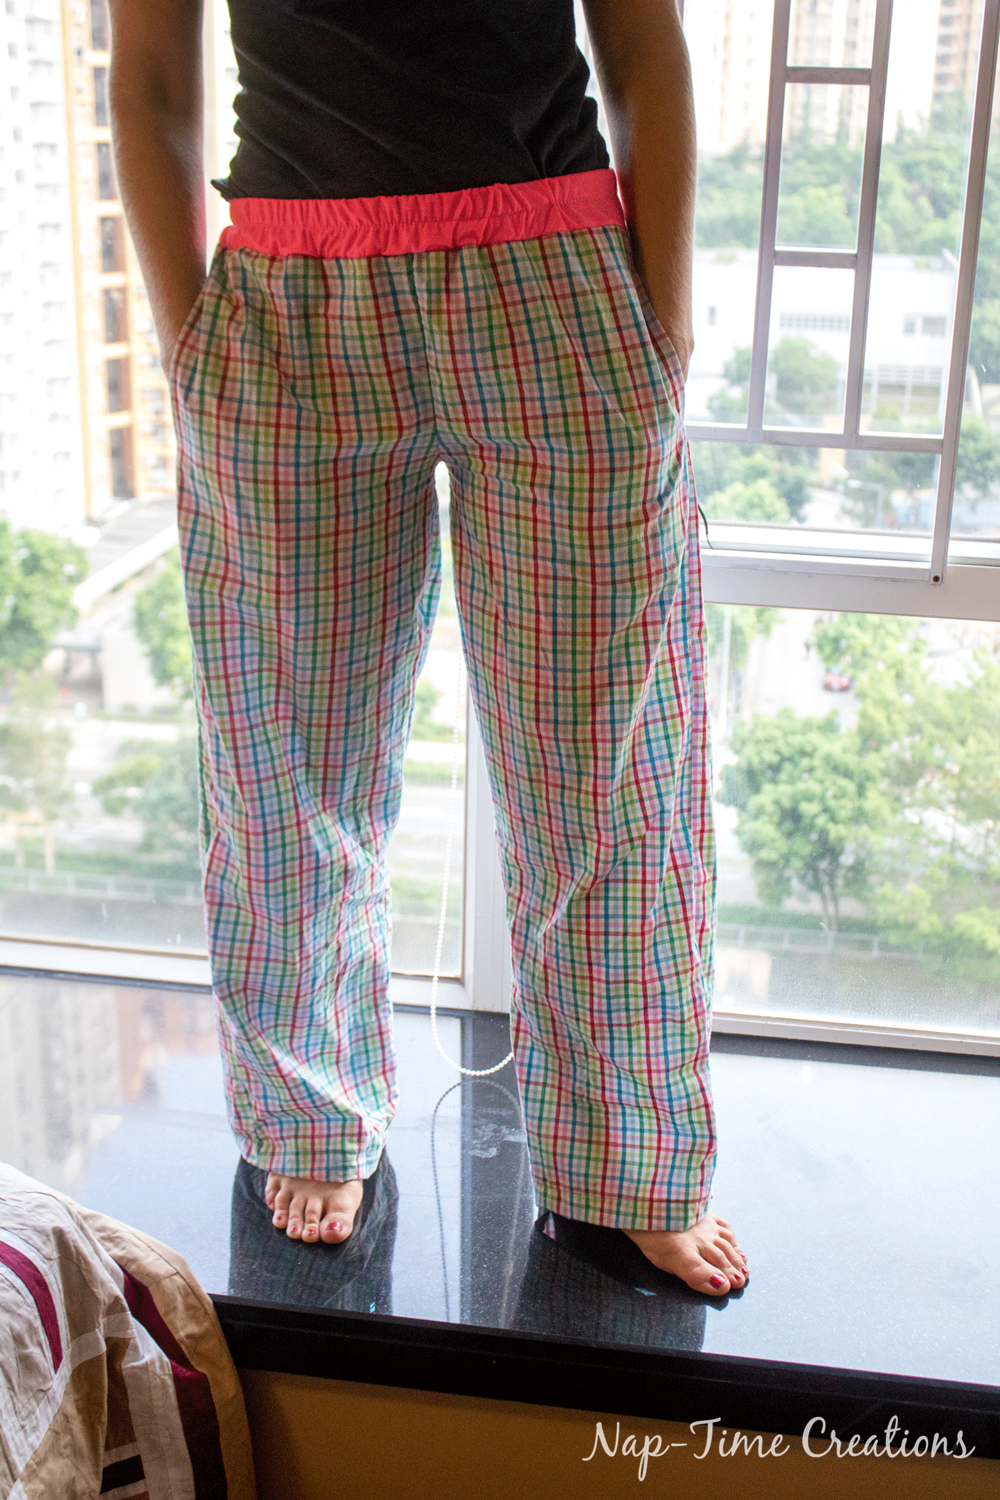 It is a graphic of Printable Pajama Pants Pattern for sweatpants champion